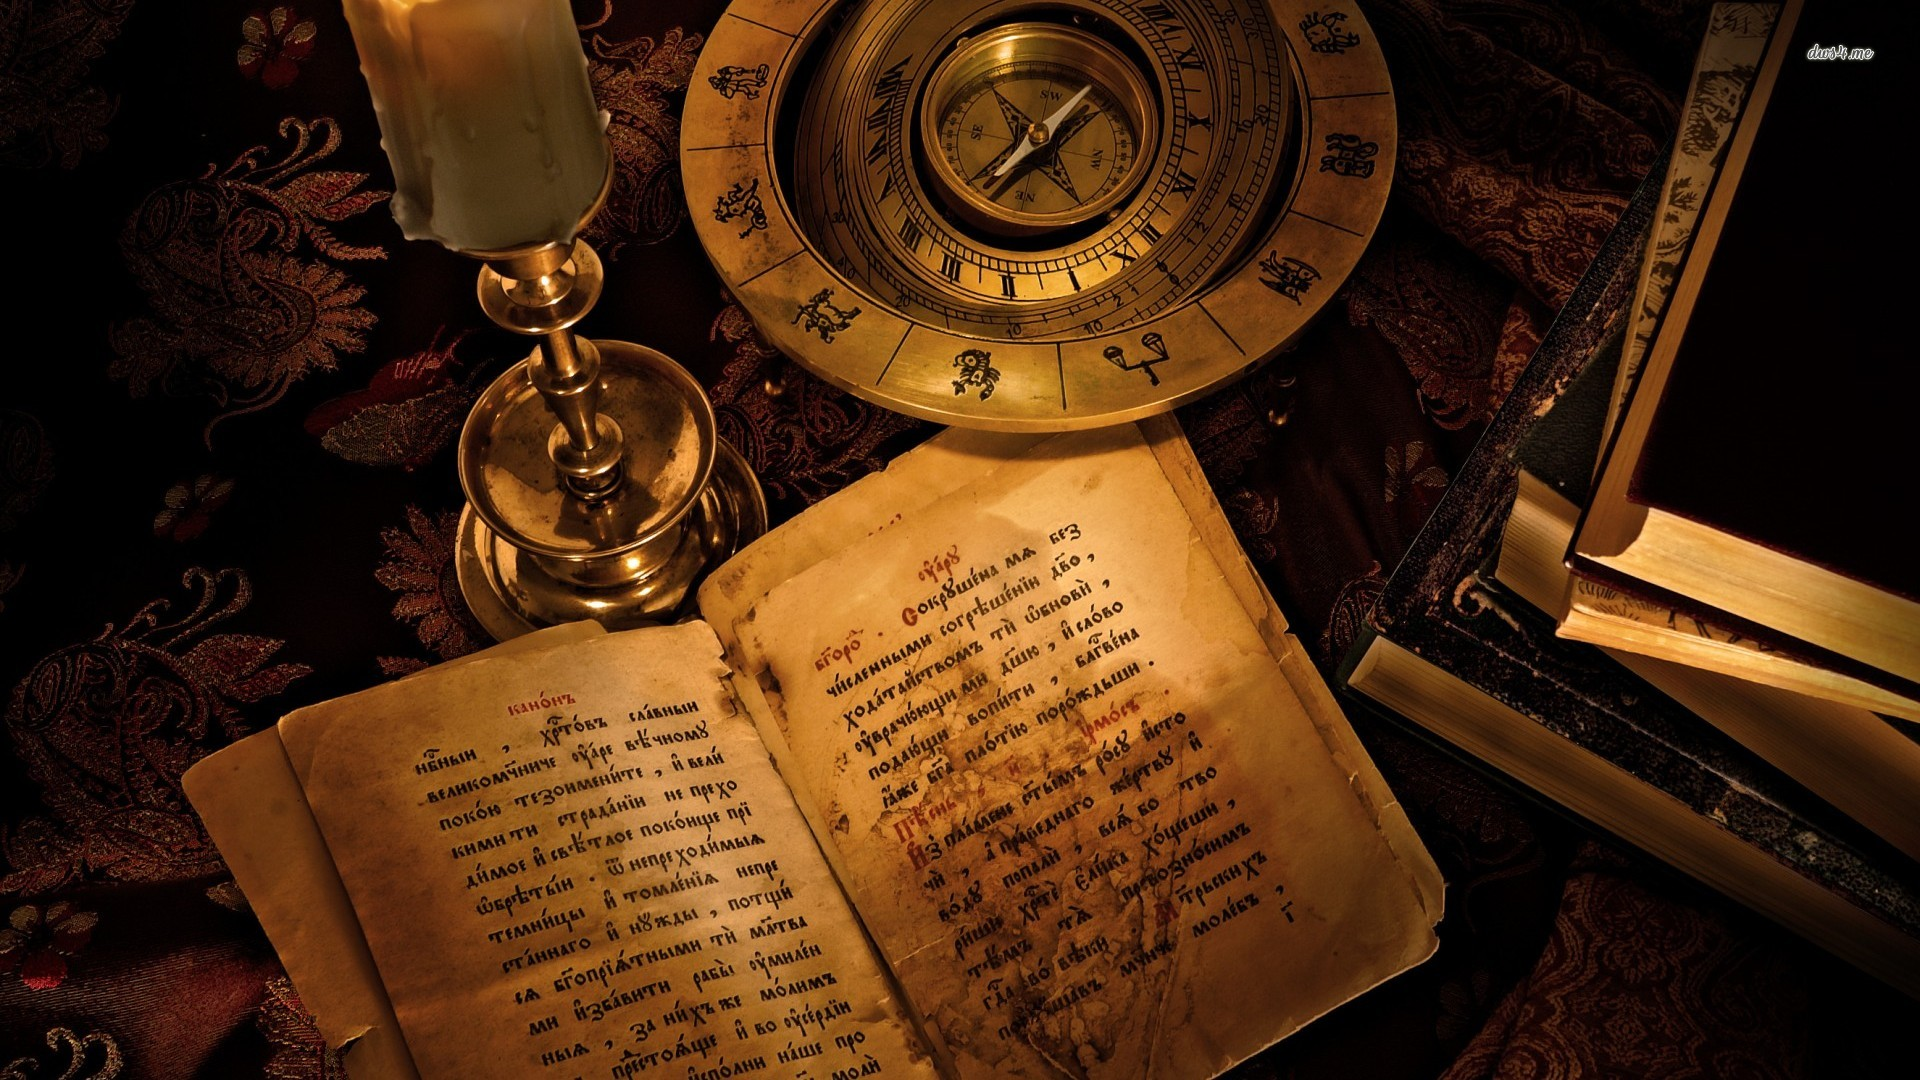 ... Ancient book wallpaper 1920x1080 ...